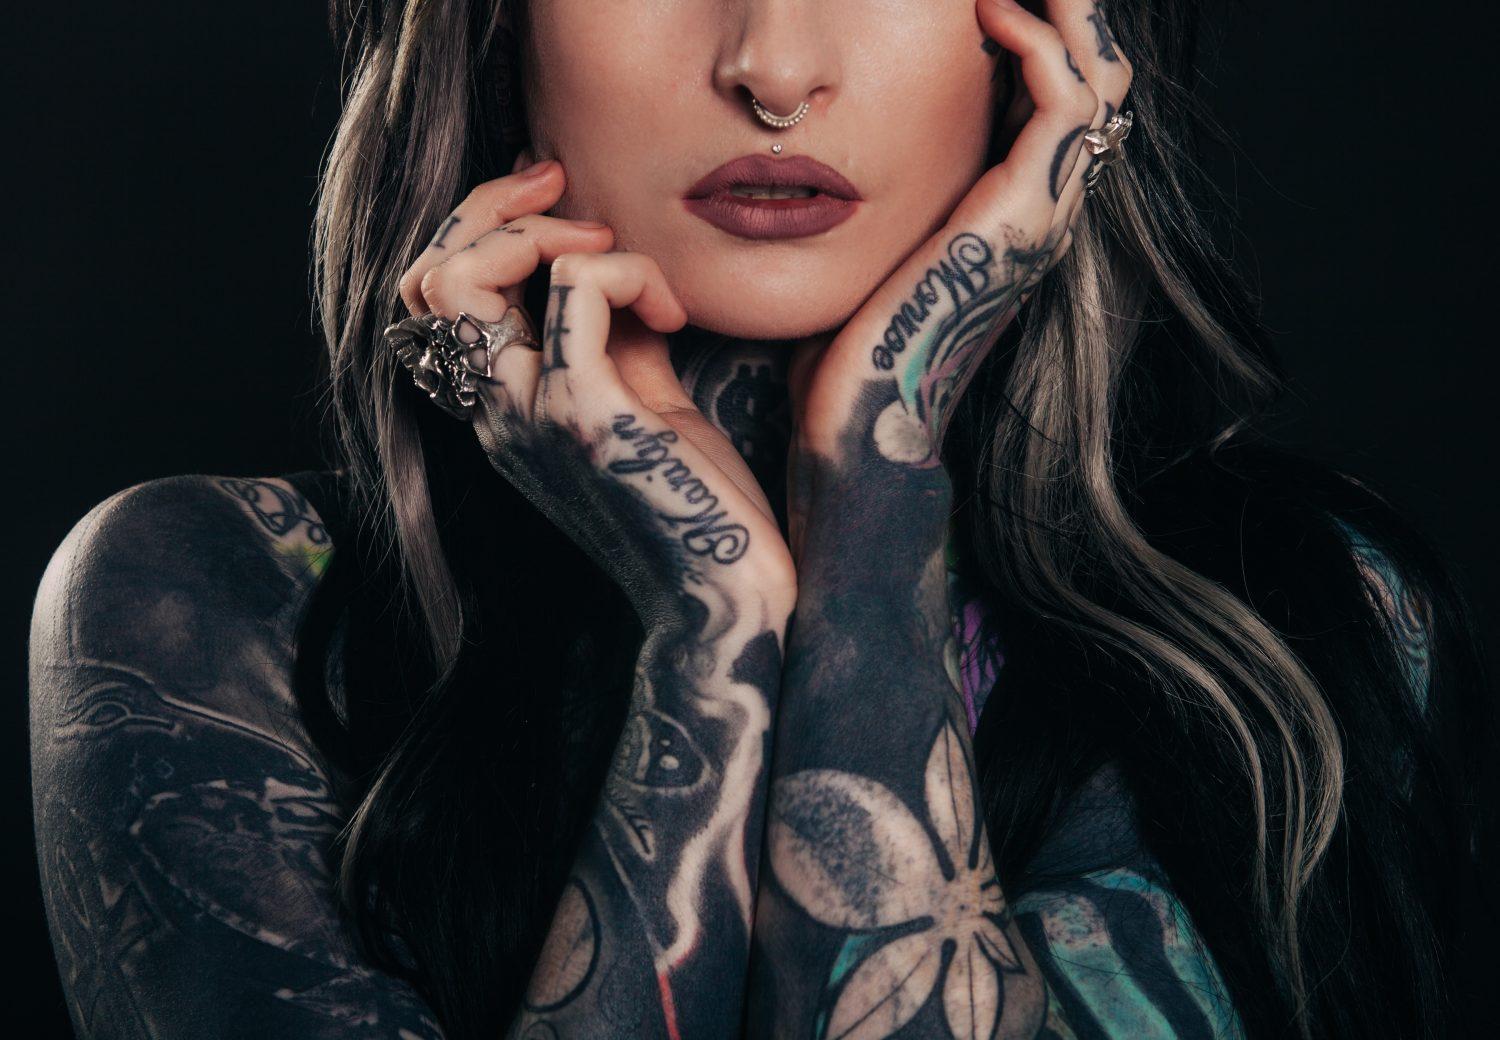 Tattoo Ideas For Girls: Find Unique Inspiration For Your Next Ink